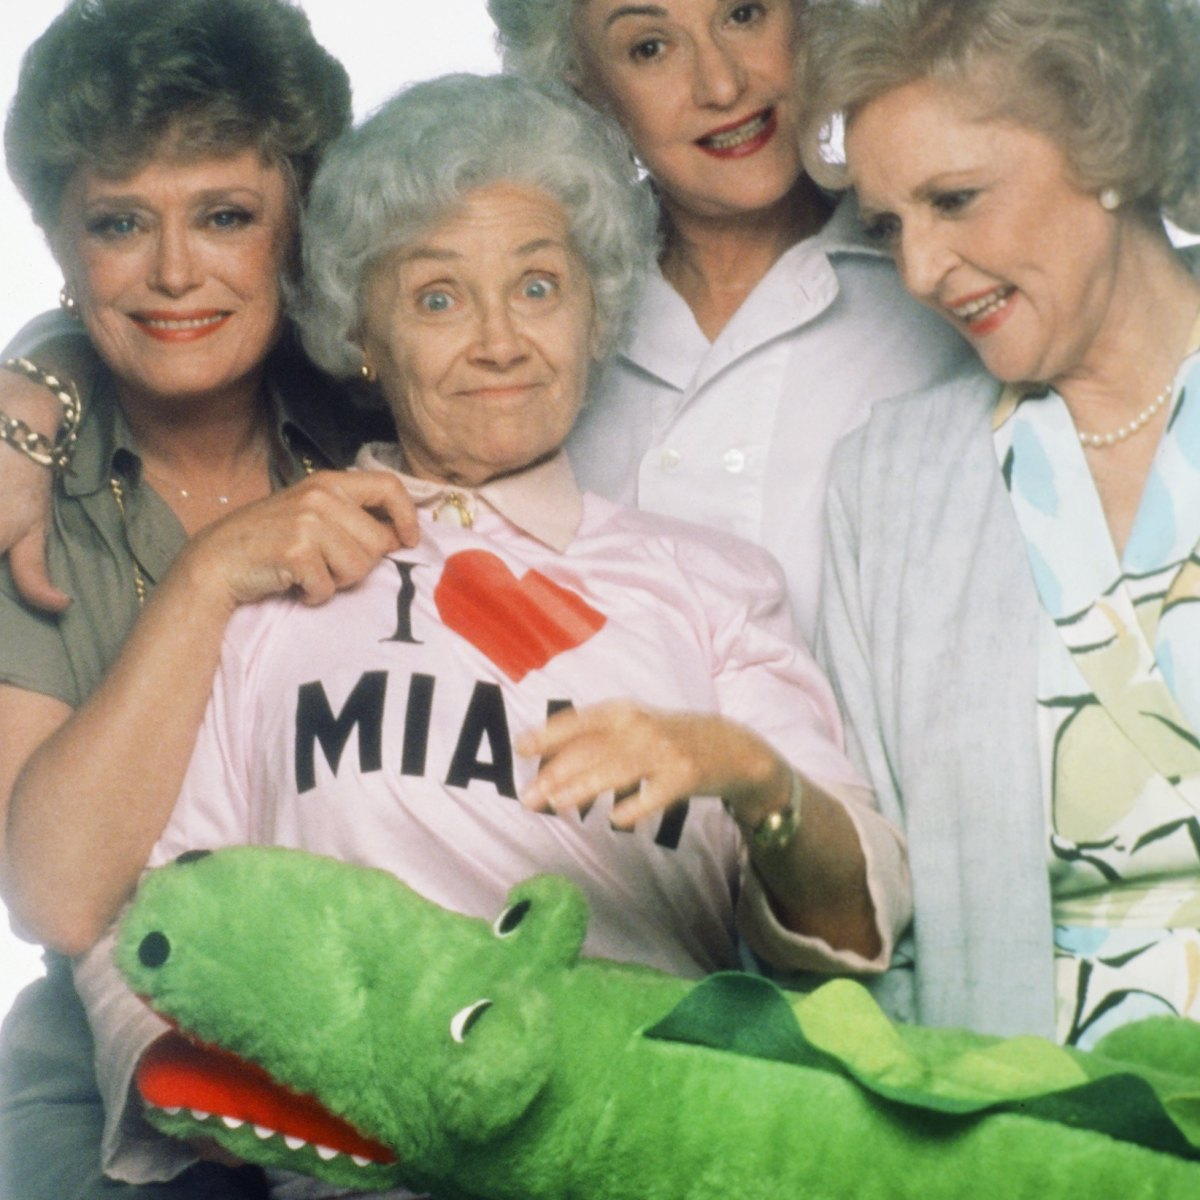 d6aa6f8c Betty White's Series 'The Golden Girls' Continues To Live On Today